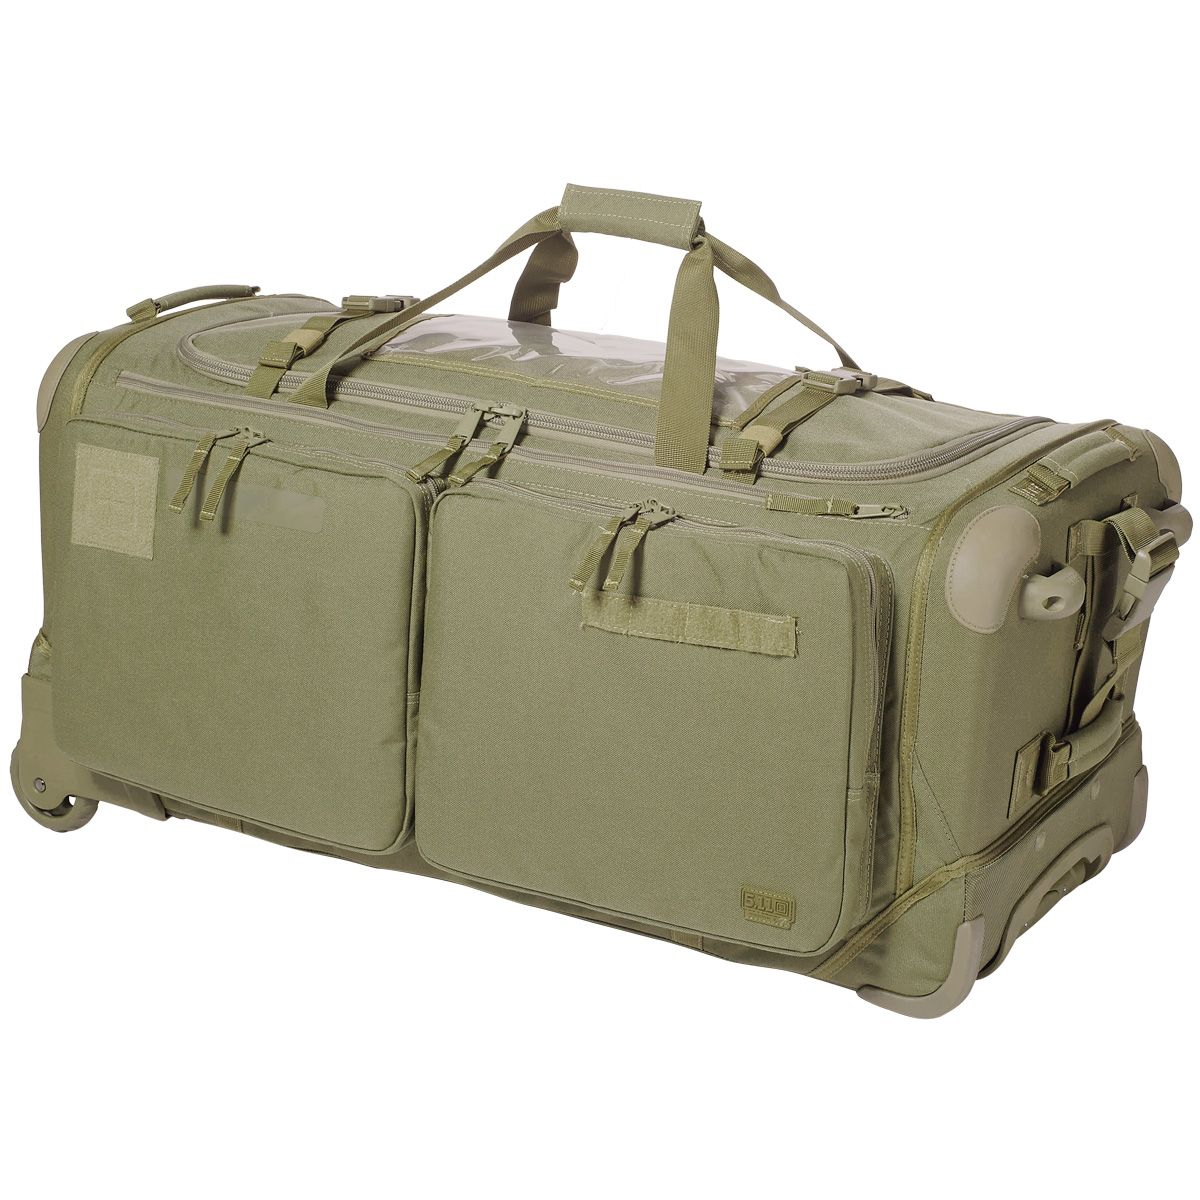 f821cc671158 At Military 1st we want you to be completely satisfied every time you shop  with us.